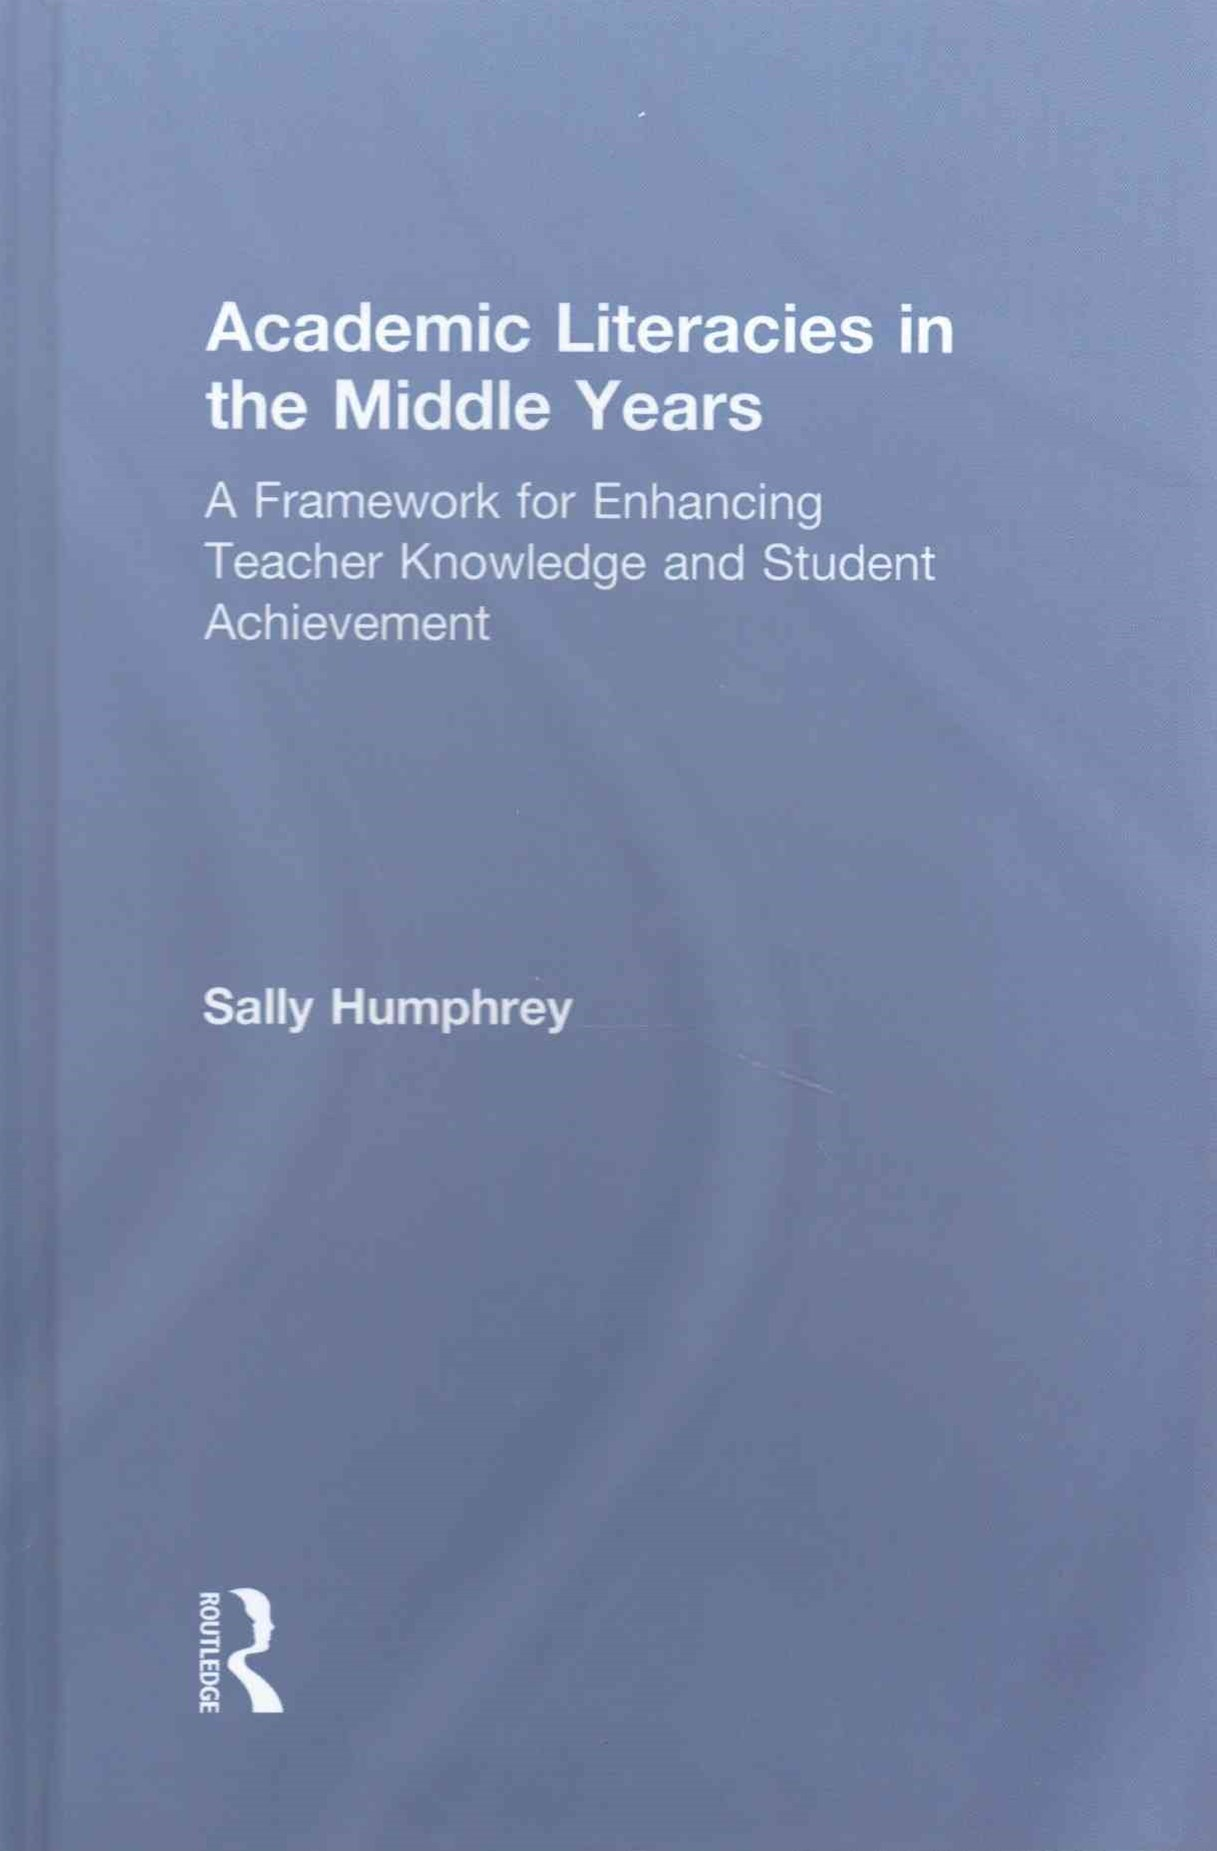 Academic Literacies in the Middle Years